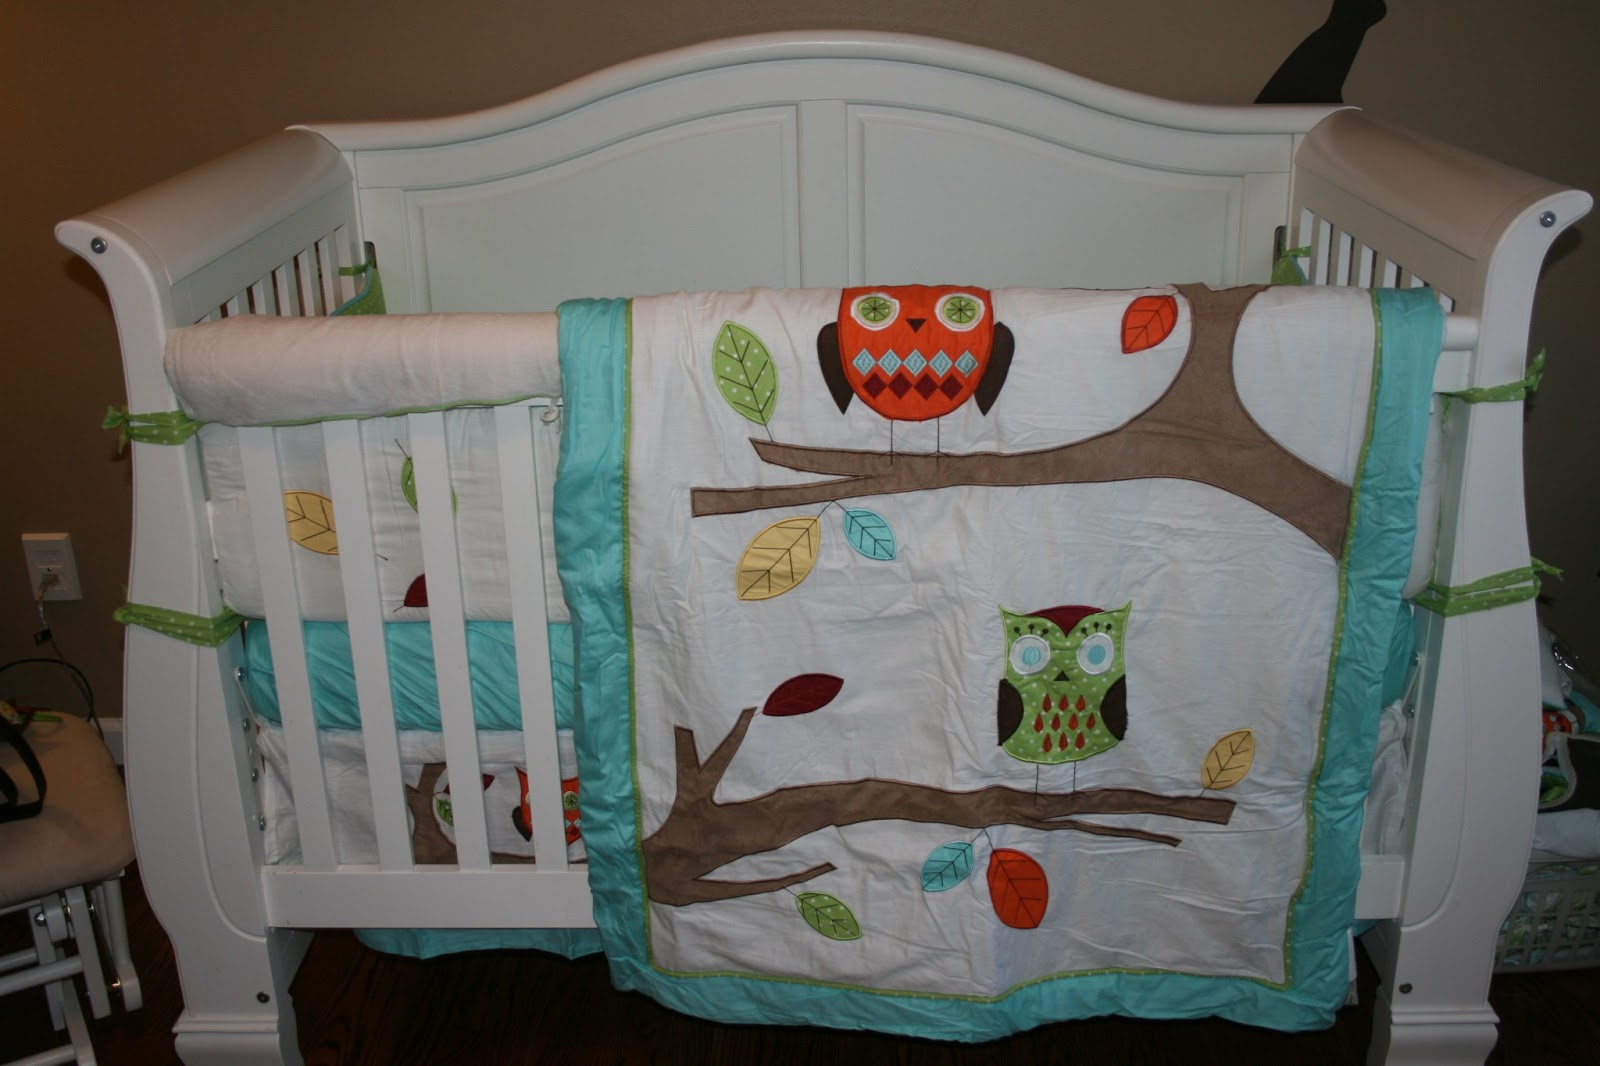 Best Crib Blanket The blanket is designed with exquisite tree branches filled with detailed appliqu and embroidery works of owls and leaves